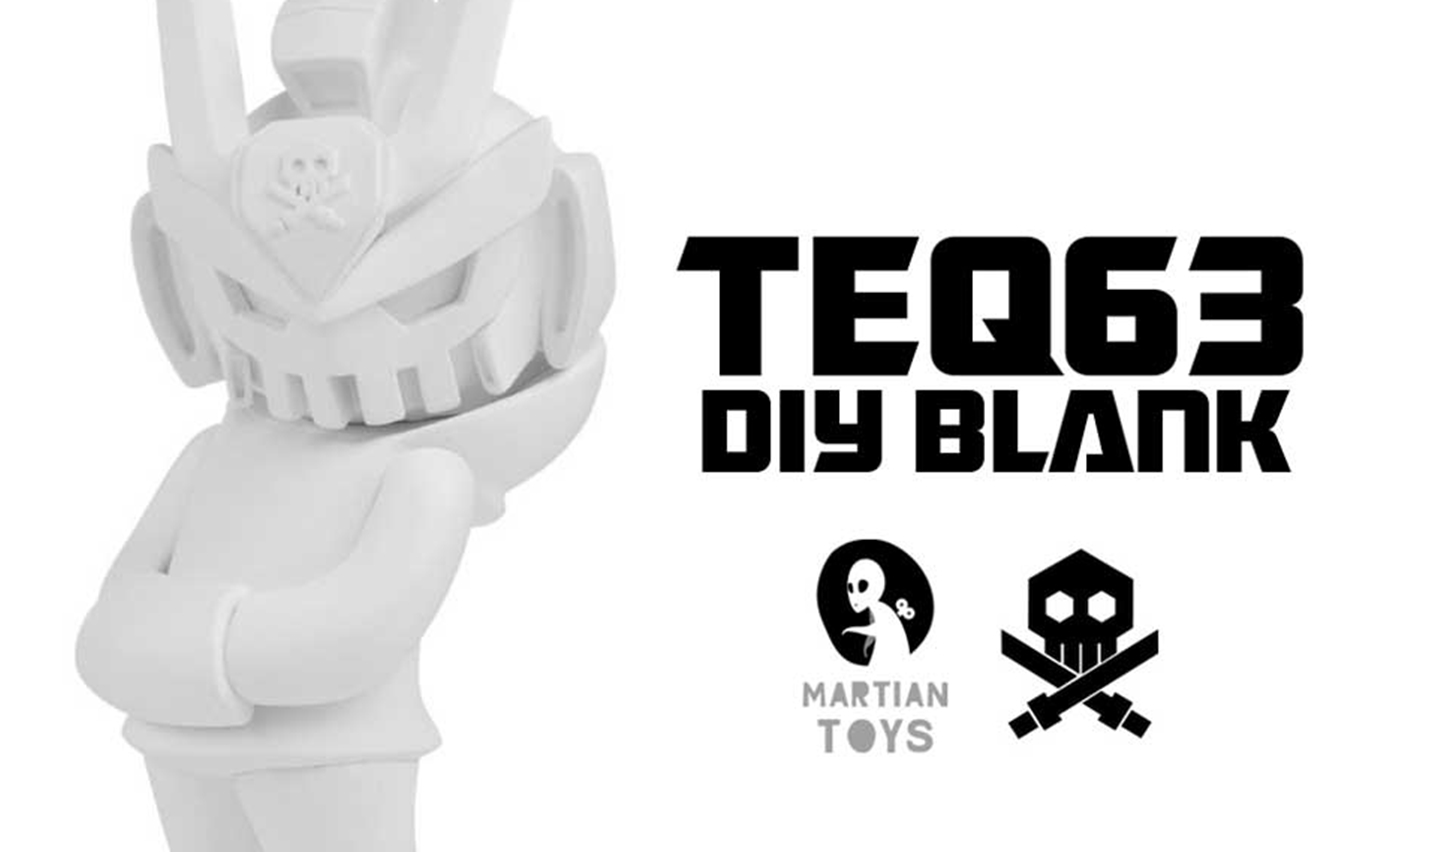 TEQ63 DIY Blank Figure thumb